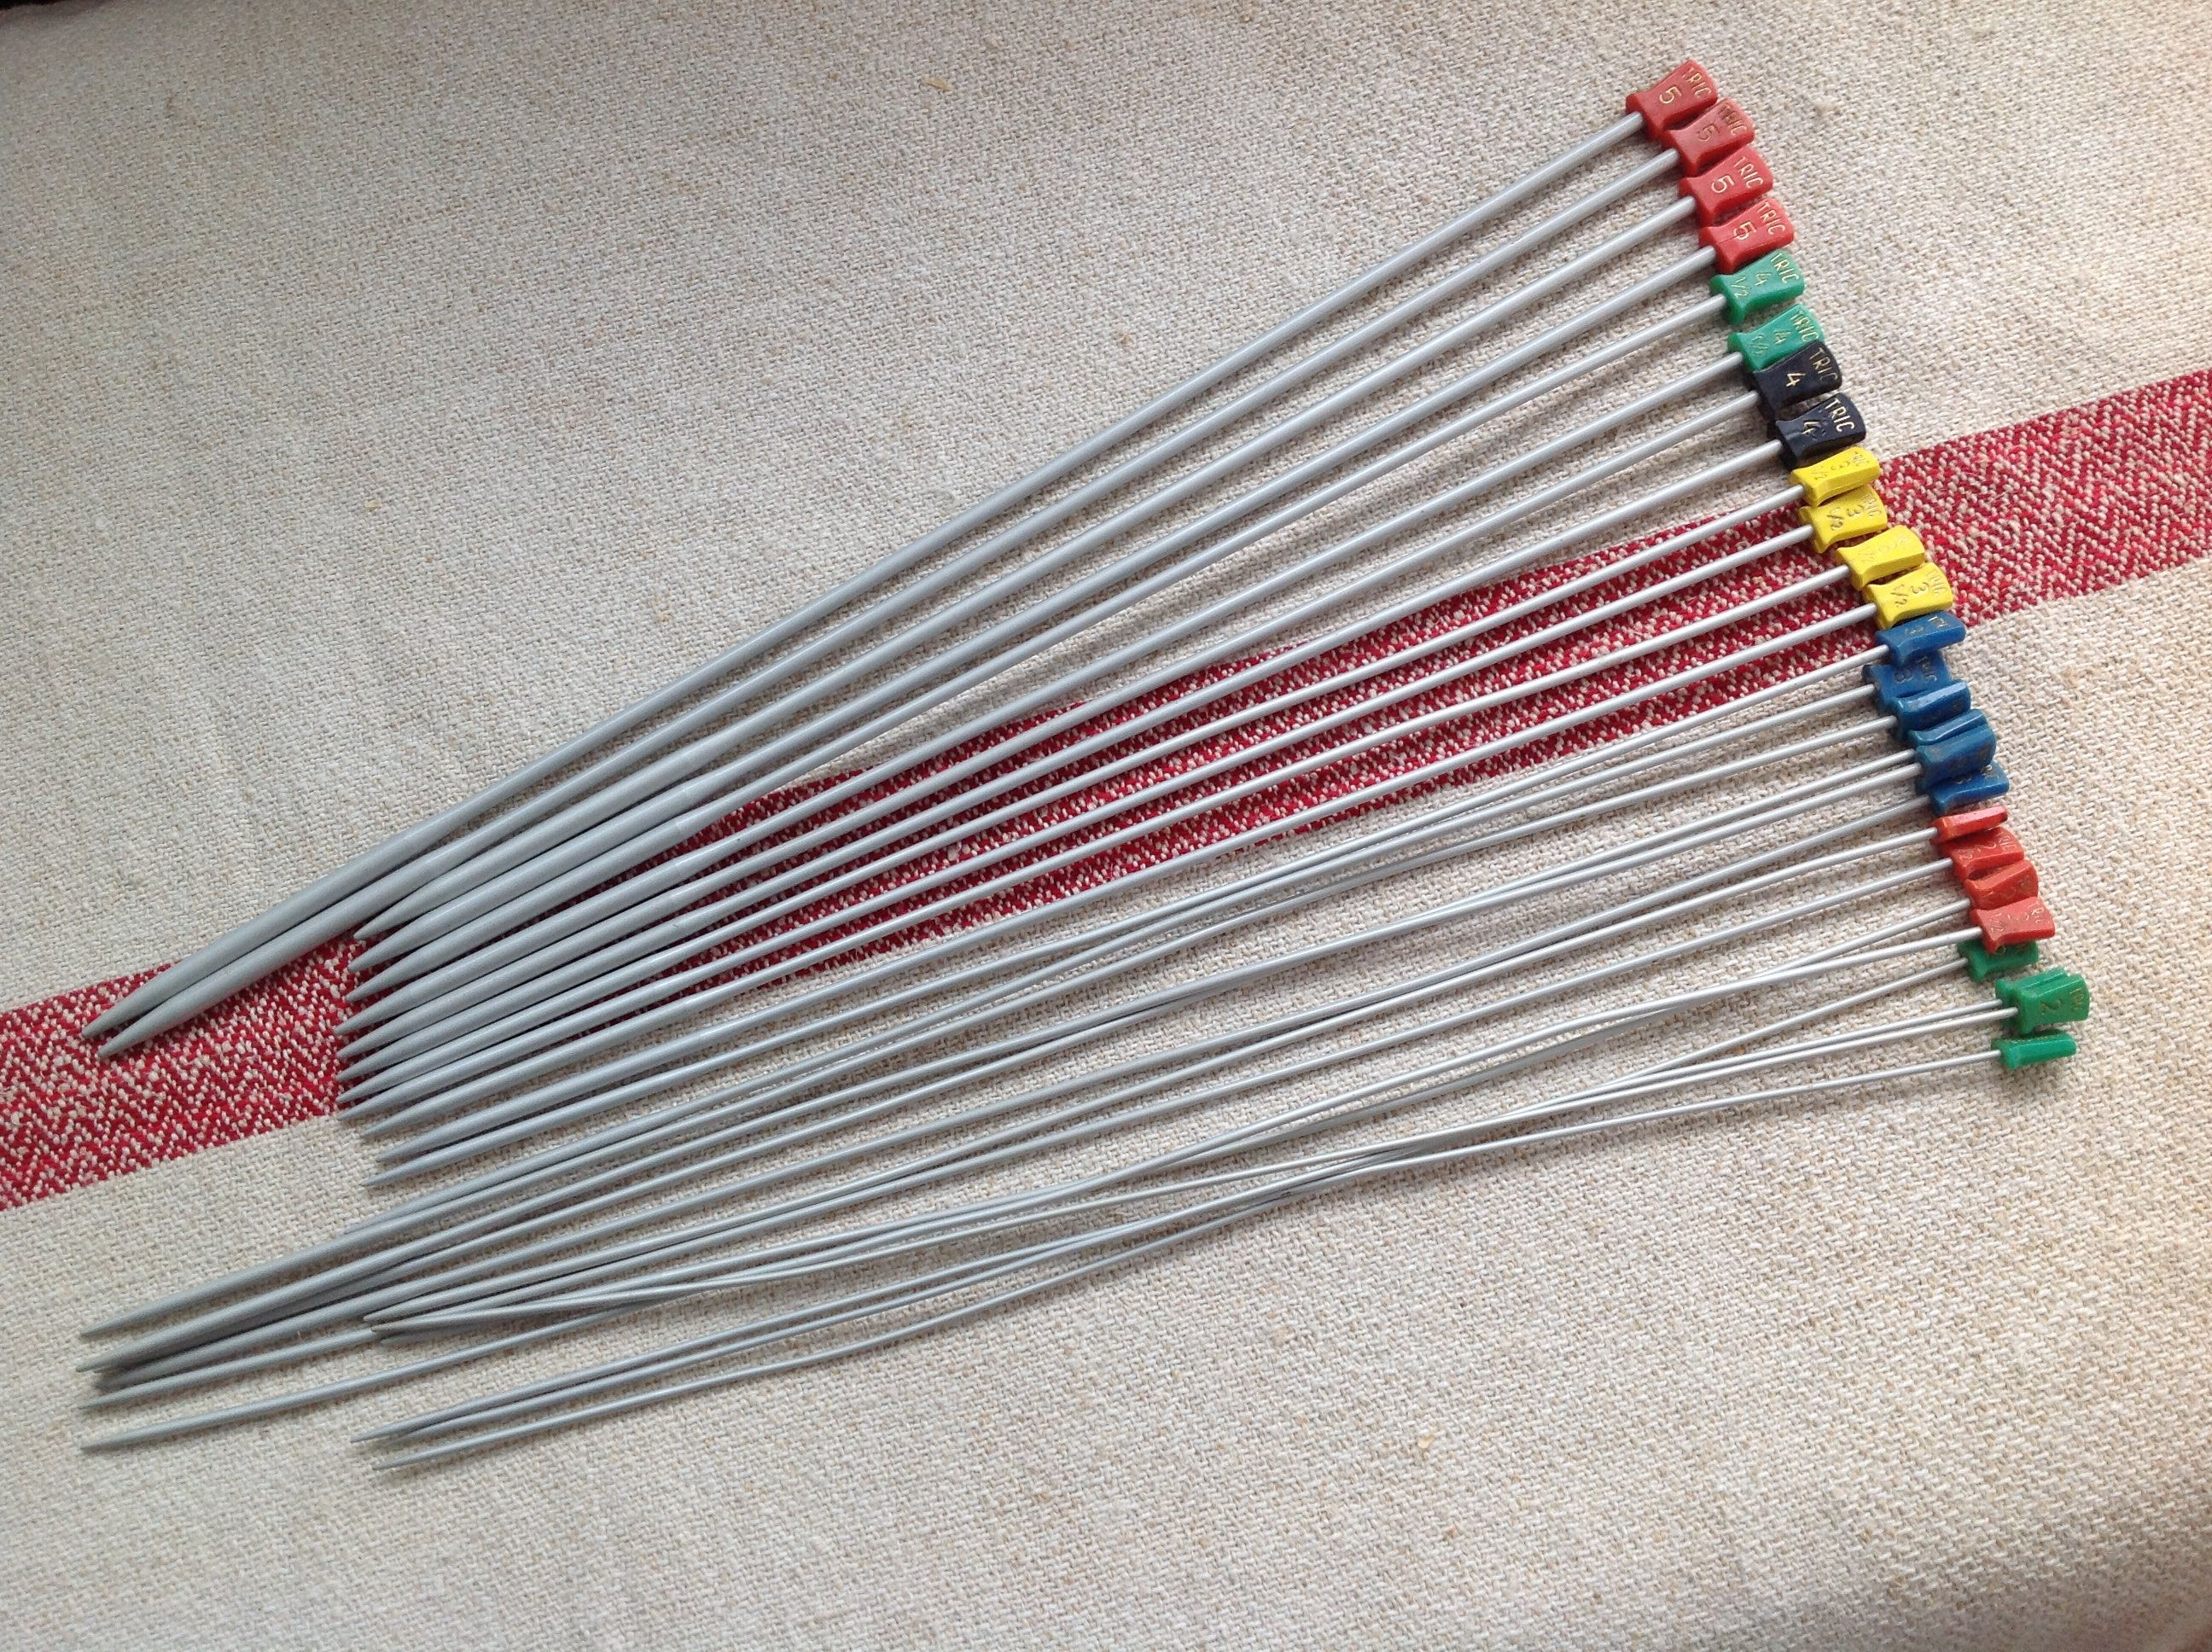 antique spinning needle collection wooden knitting needles